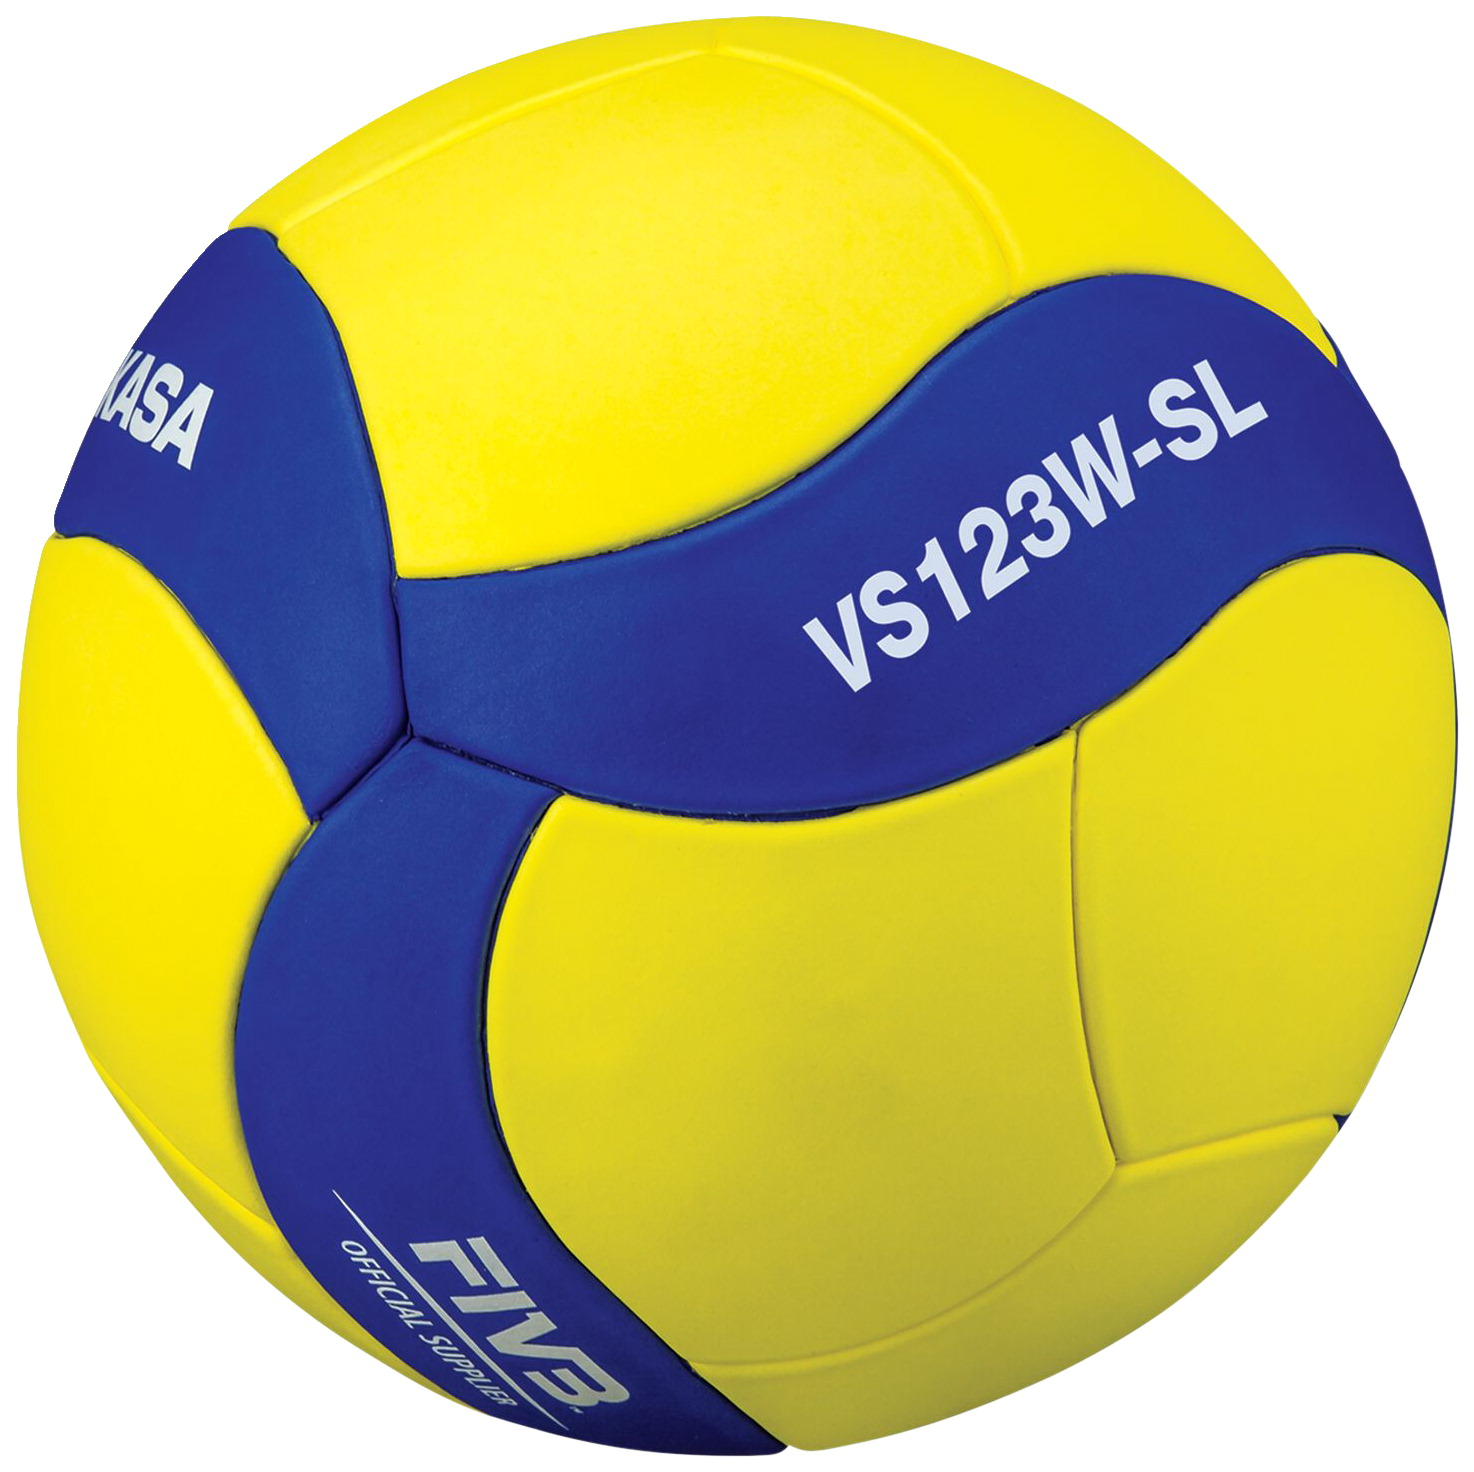 Mikasa VS123WSL Size 5 Official Super Lightweight Training Volleyball, Yellow/Blue